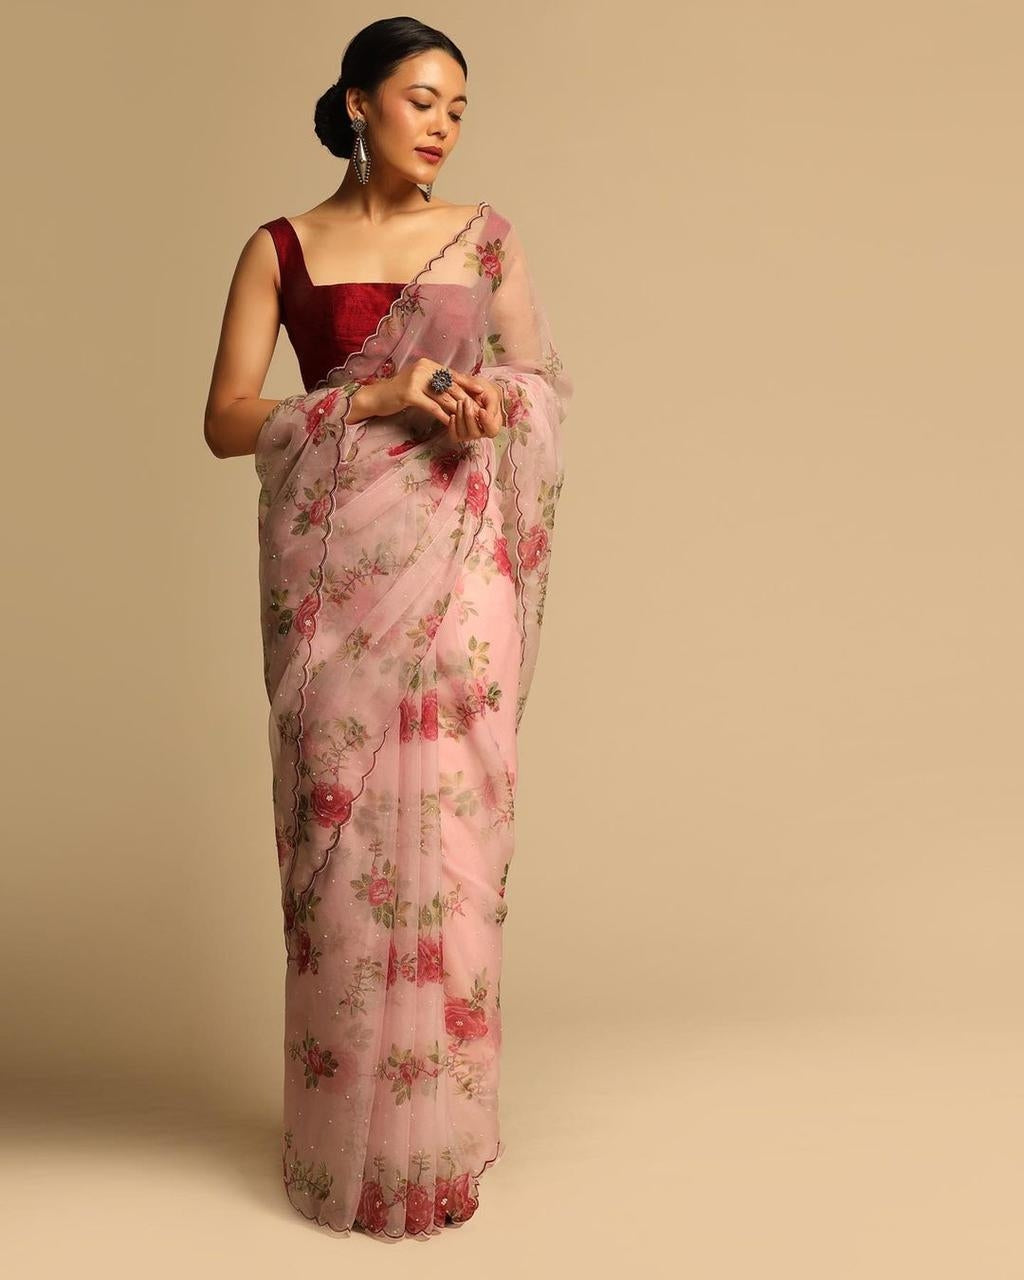 Peach Organza Silk Saree With Floral Hand Printed Work Online Shopping